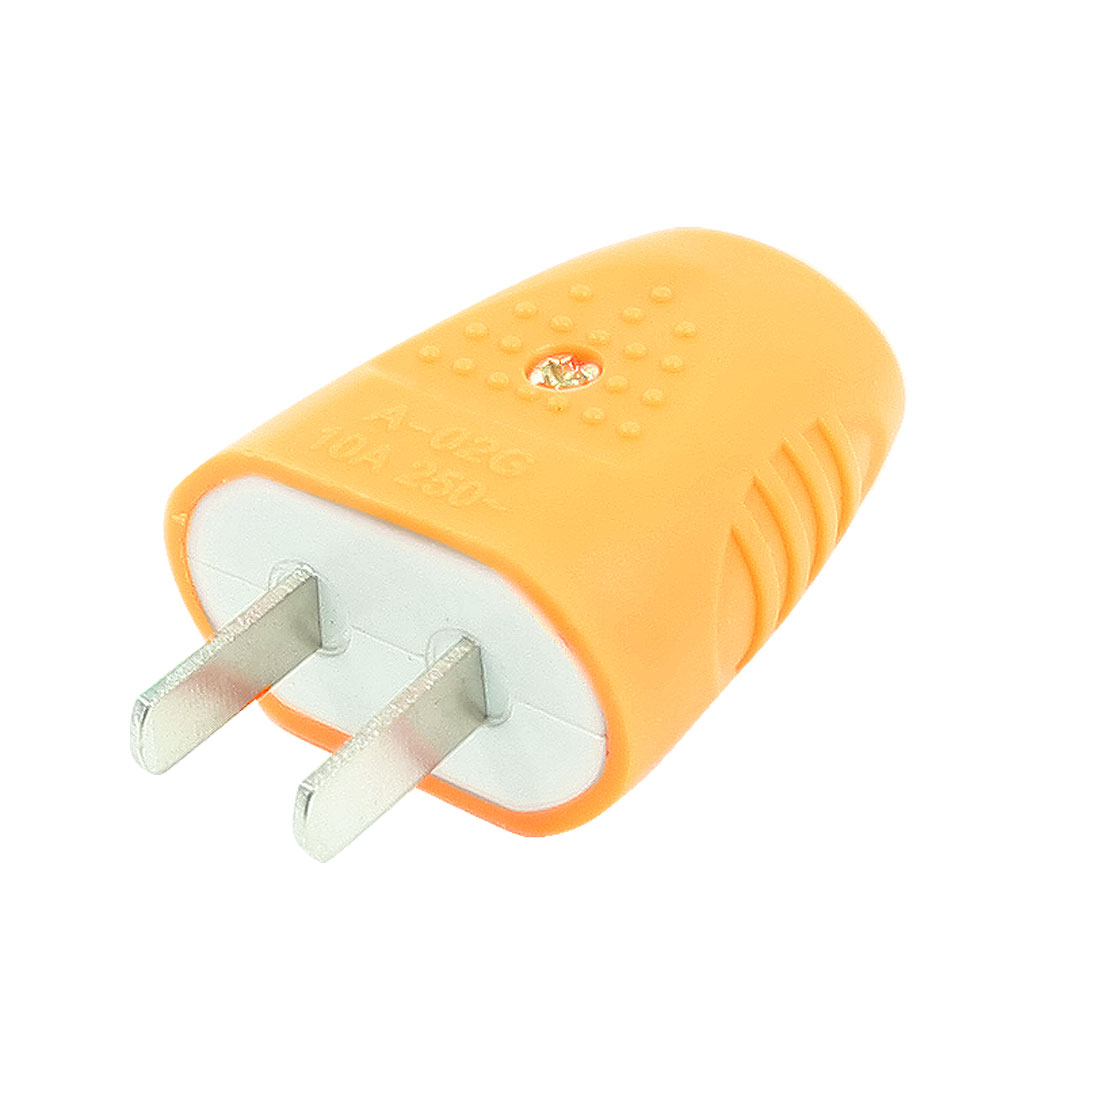 AC 250V 10A 7.4mm Dia Wire Hole 2 Flat Pin AU US Plug Orange Power Adapter